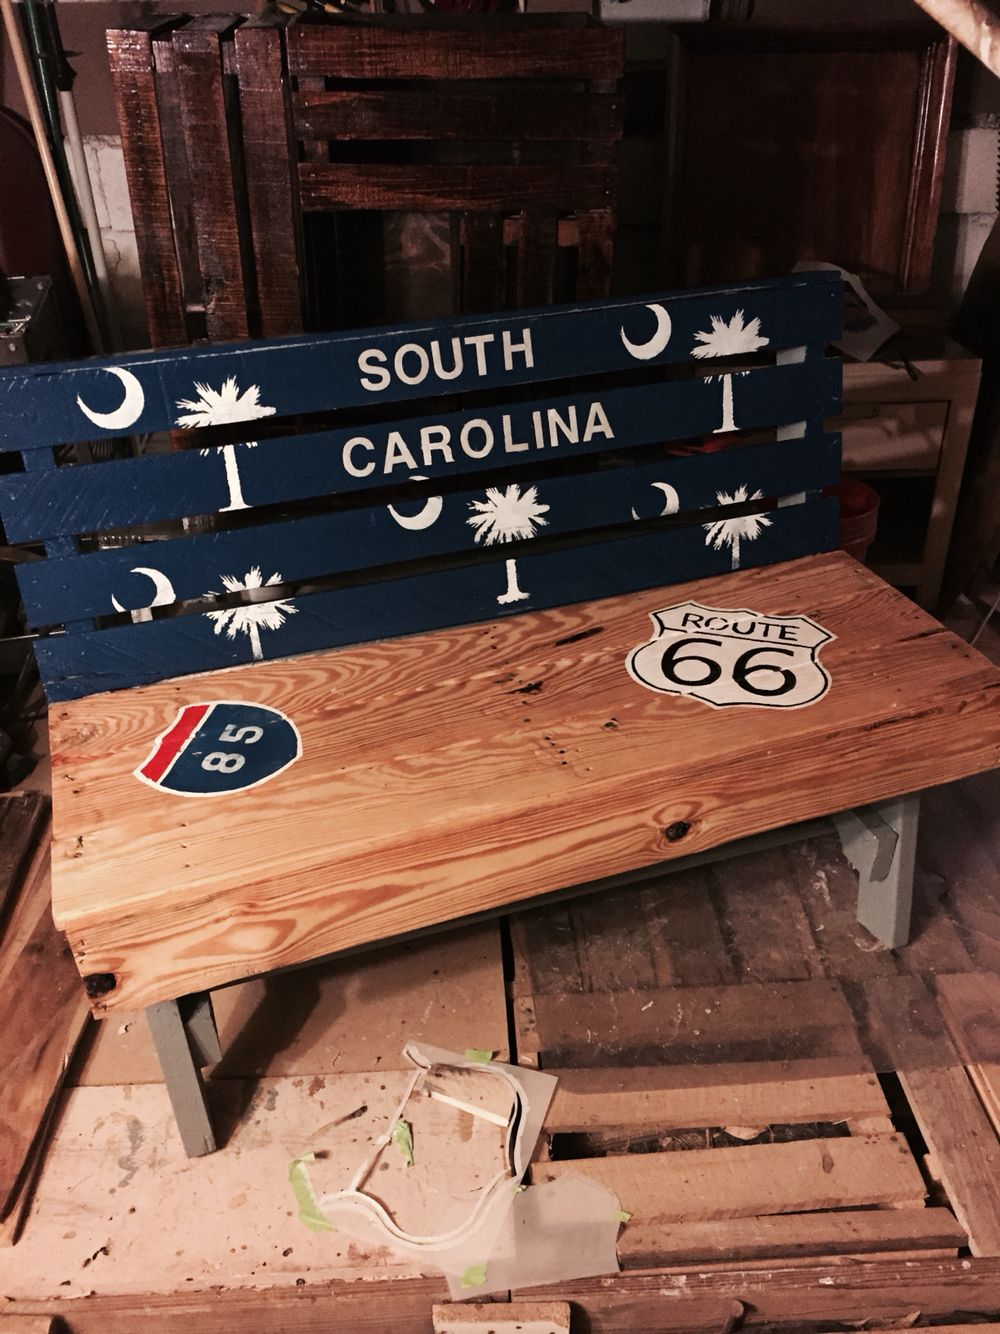 SC Bench Made Out Of Pallets Hand Paint